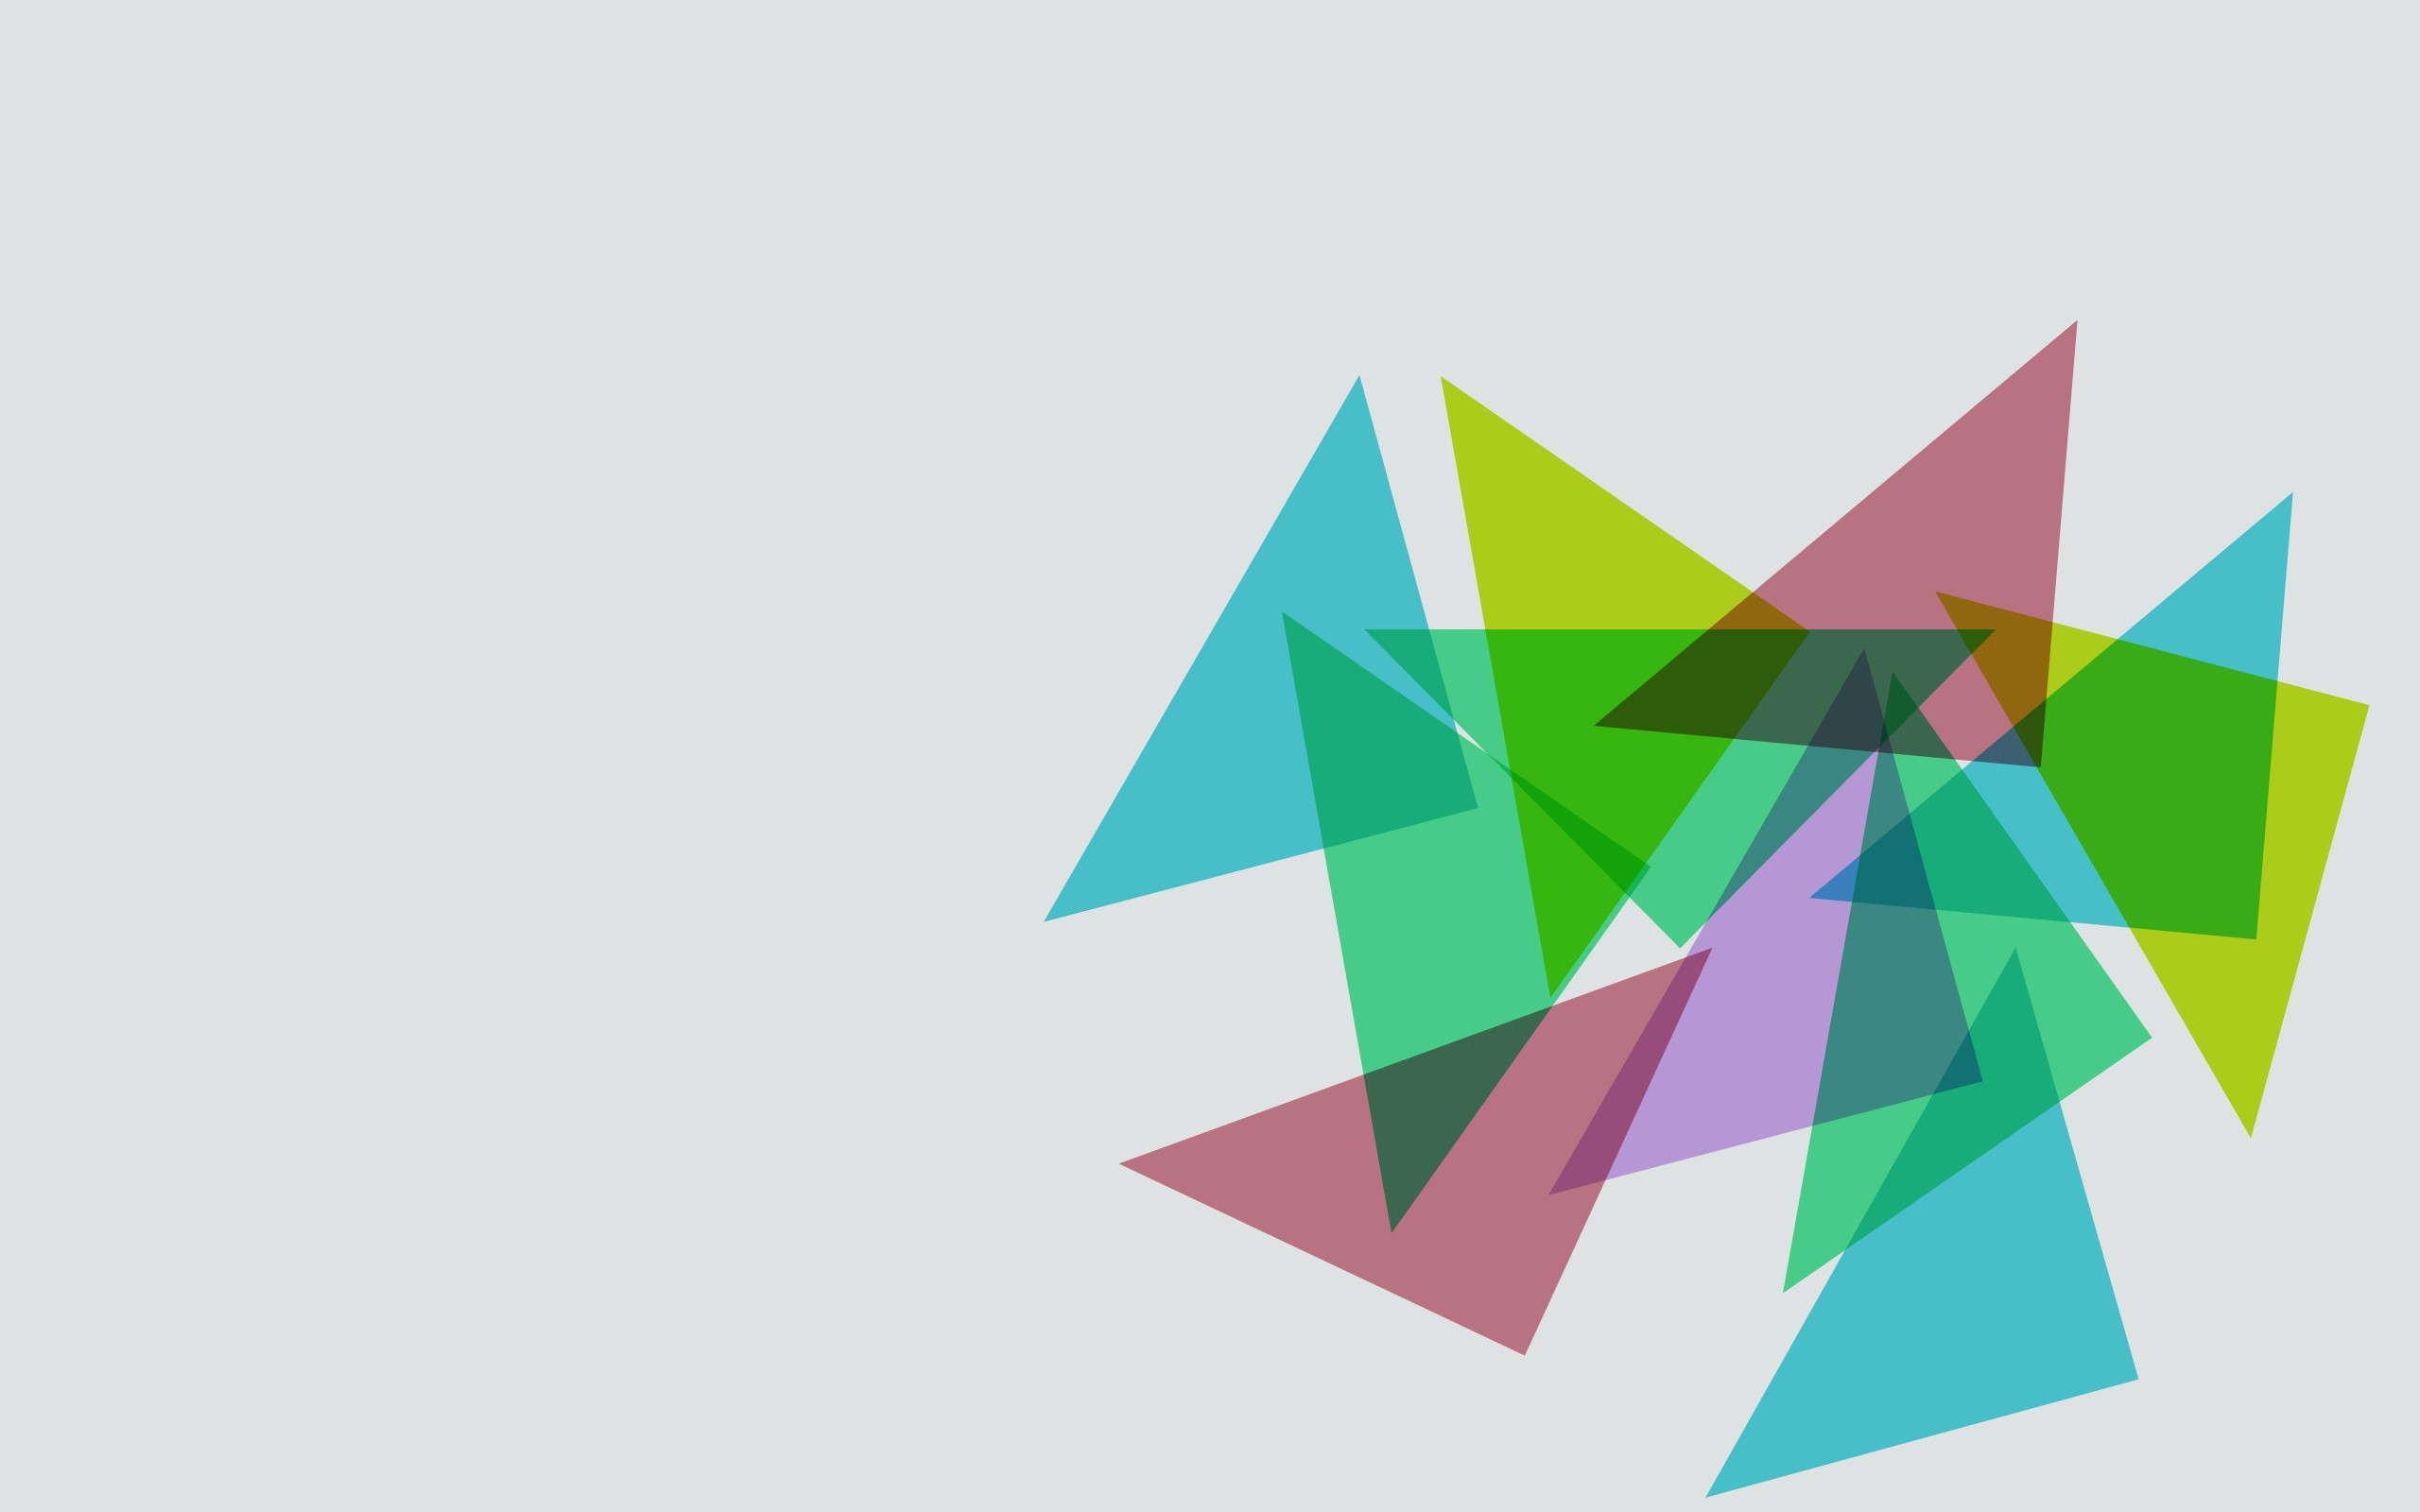 Wallpaper triangles, background, shape